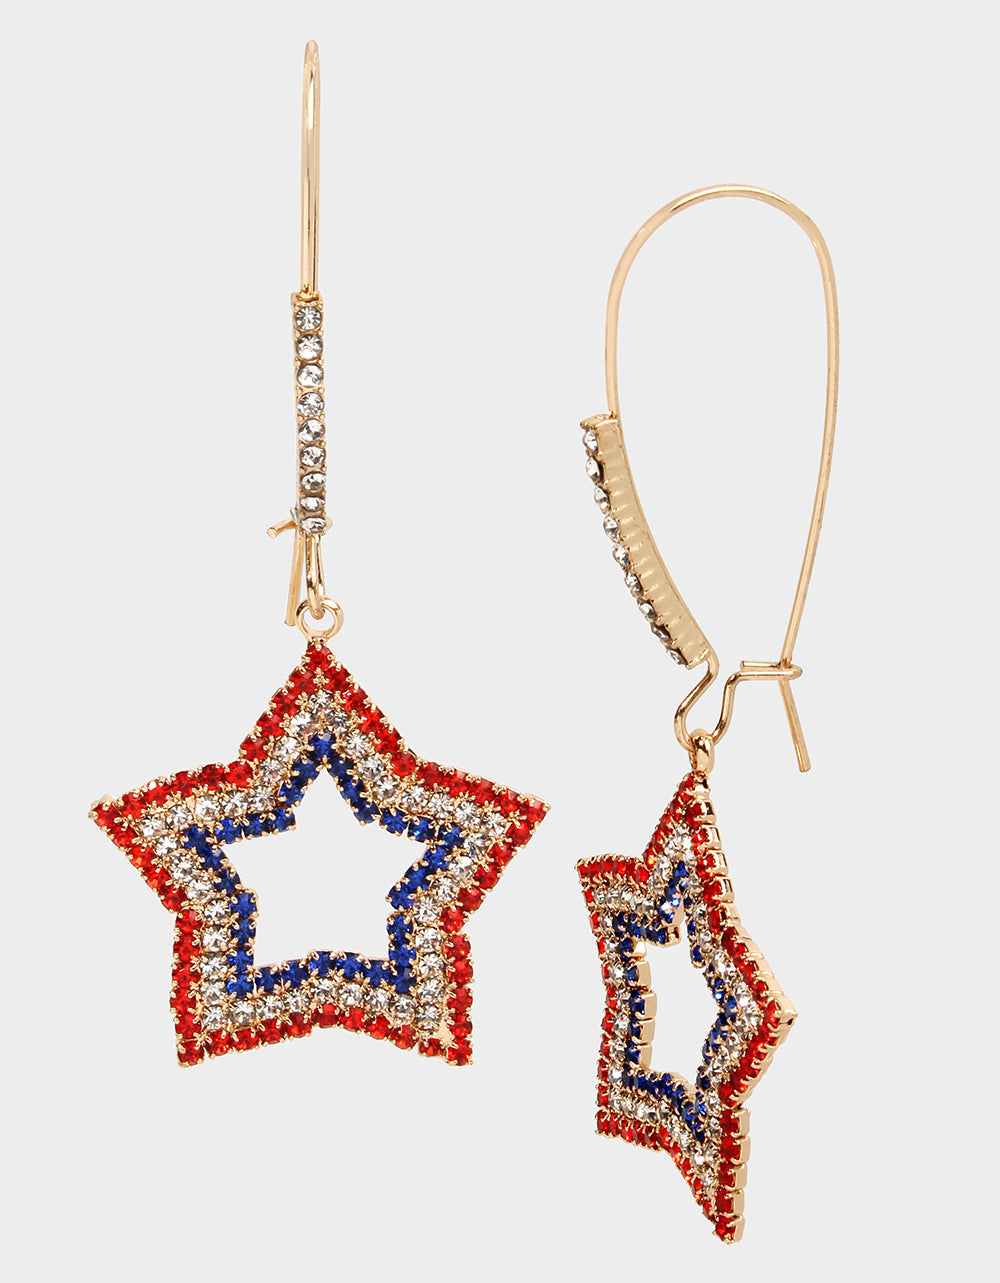 FIREWORK FUN STAR HOOK EARRINGS RED-WHITE-BLUE - JEWELRY - Betsey Johnson